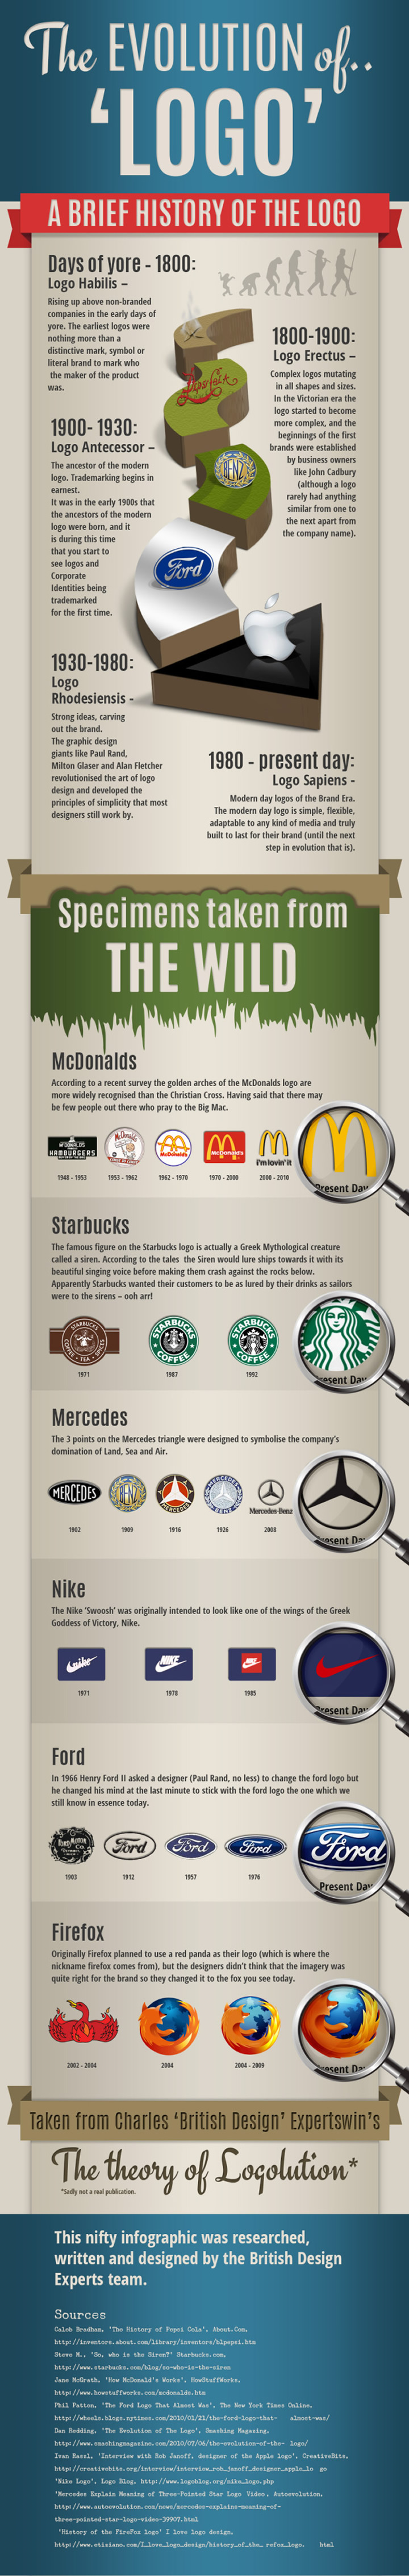 the-history-of-logo-design